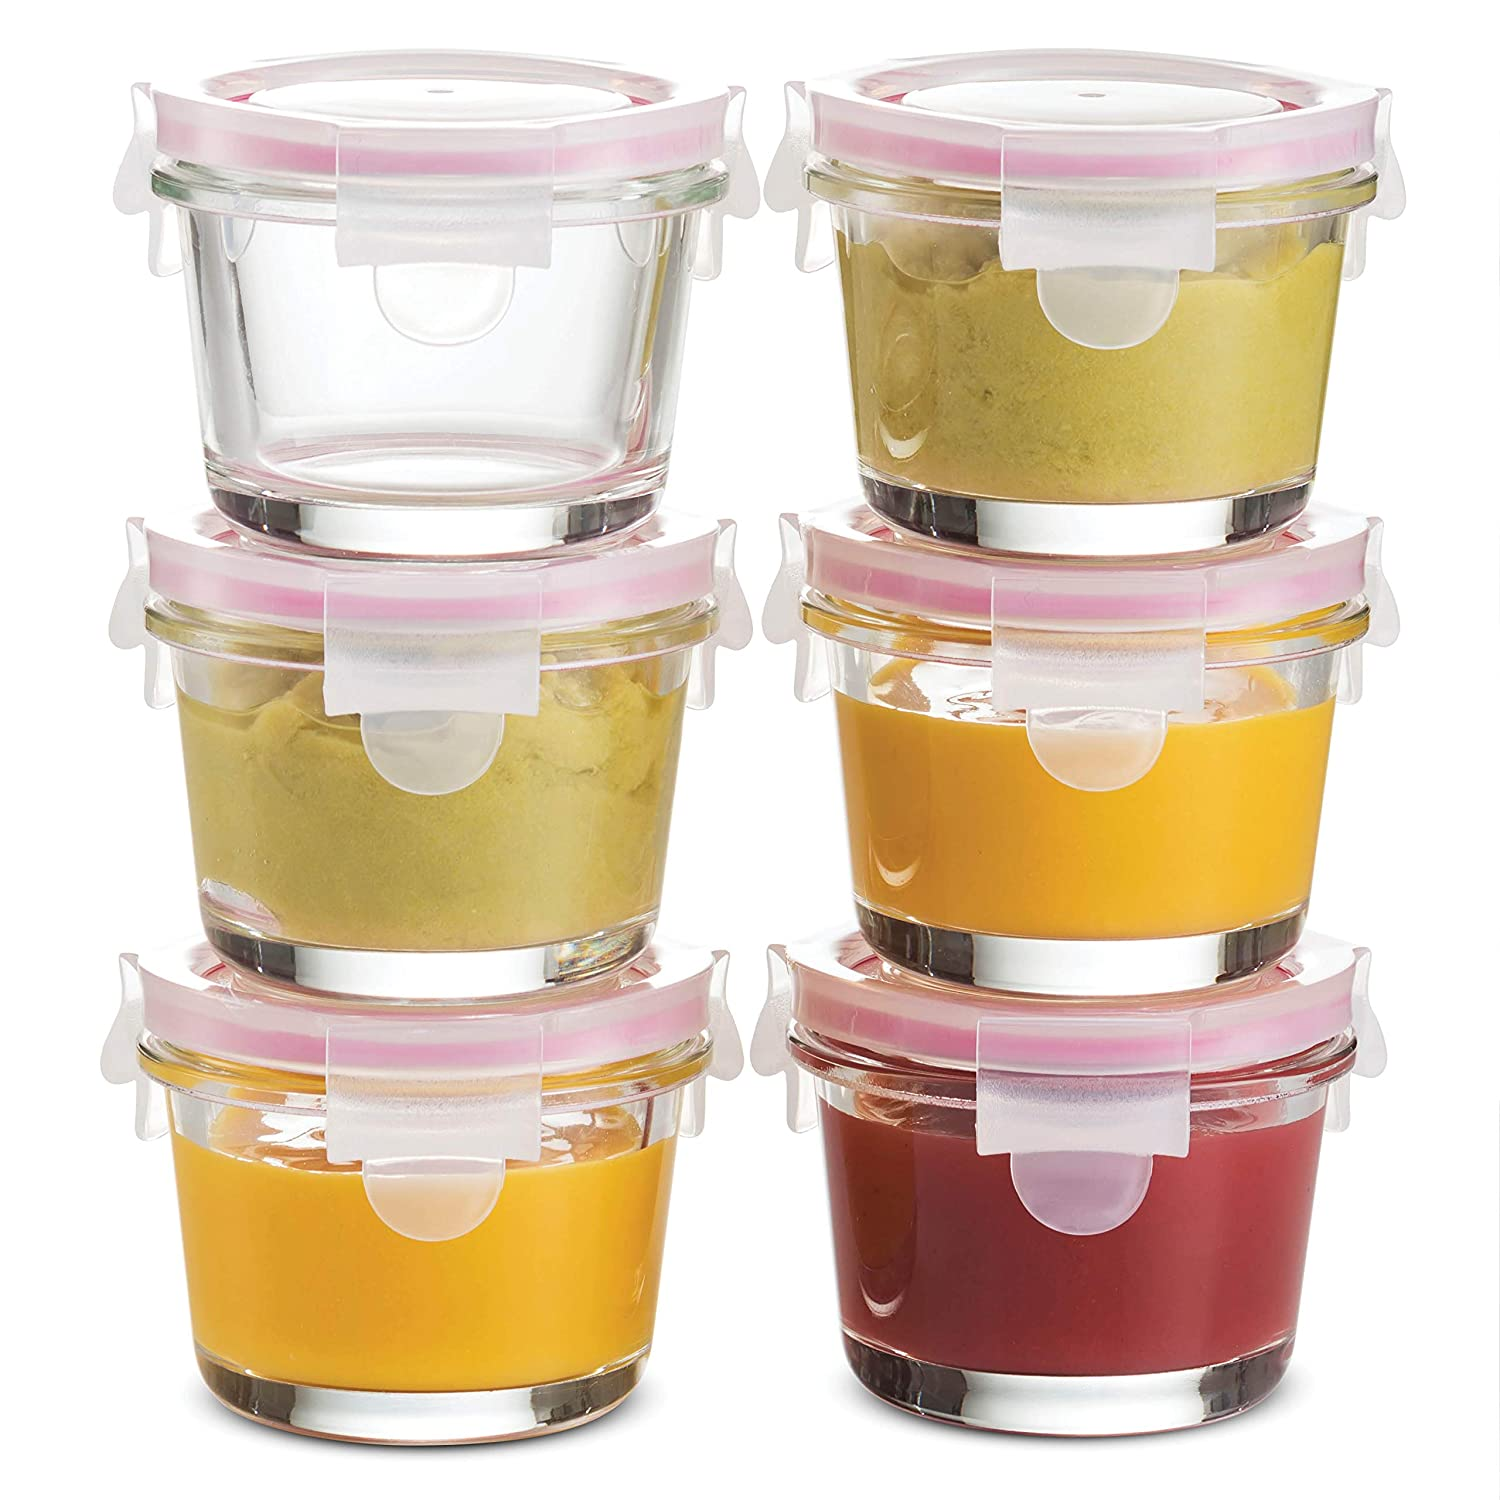 Superior Glass Baby Food Storage Containers - set of 6 - 4 Oz Containers with Airtight BPA-Free Locking Lids - Baby Food containers - Microwave & Dishwasher Safe - Small Containers for Snacks Dips etc